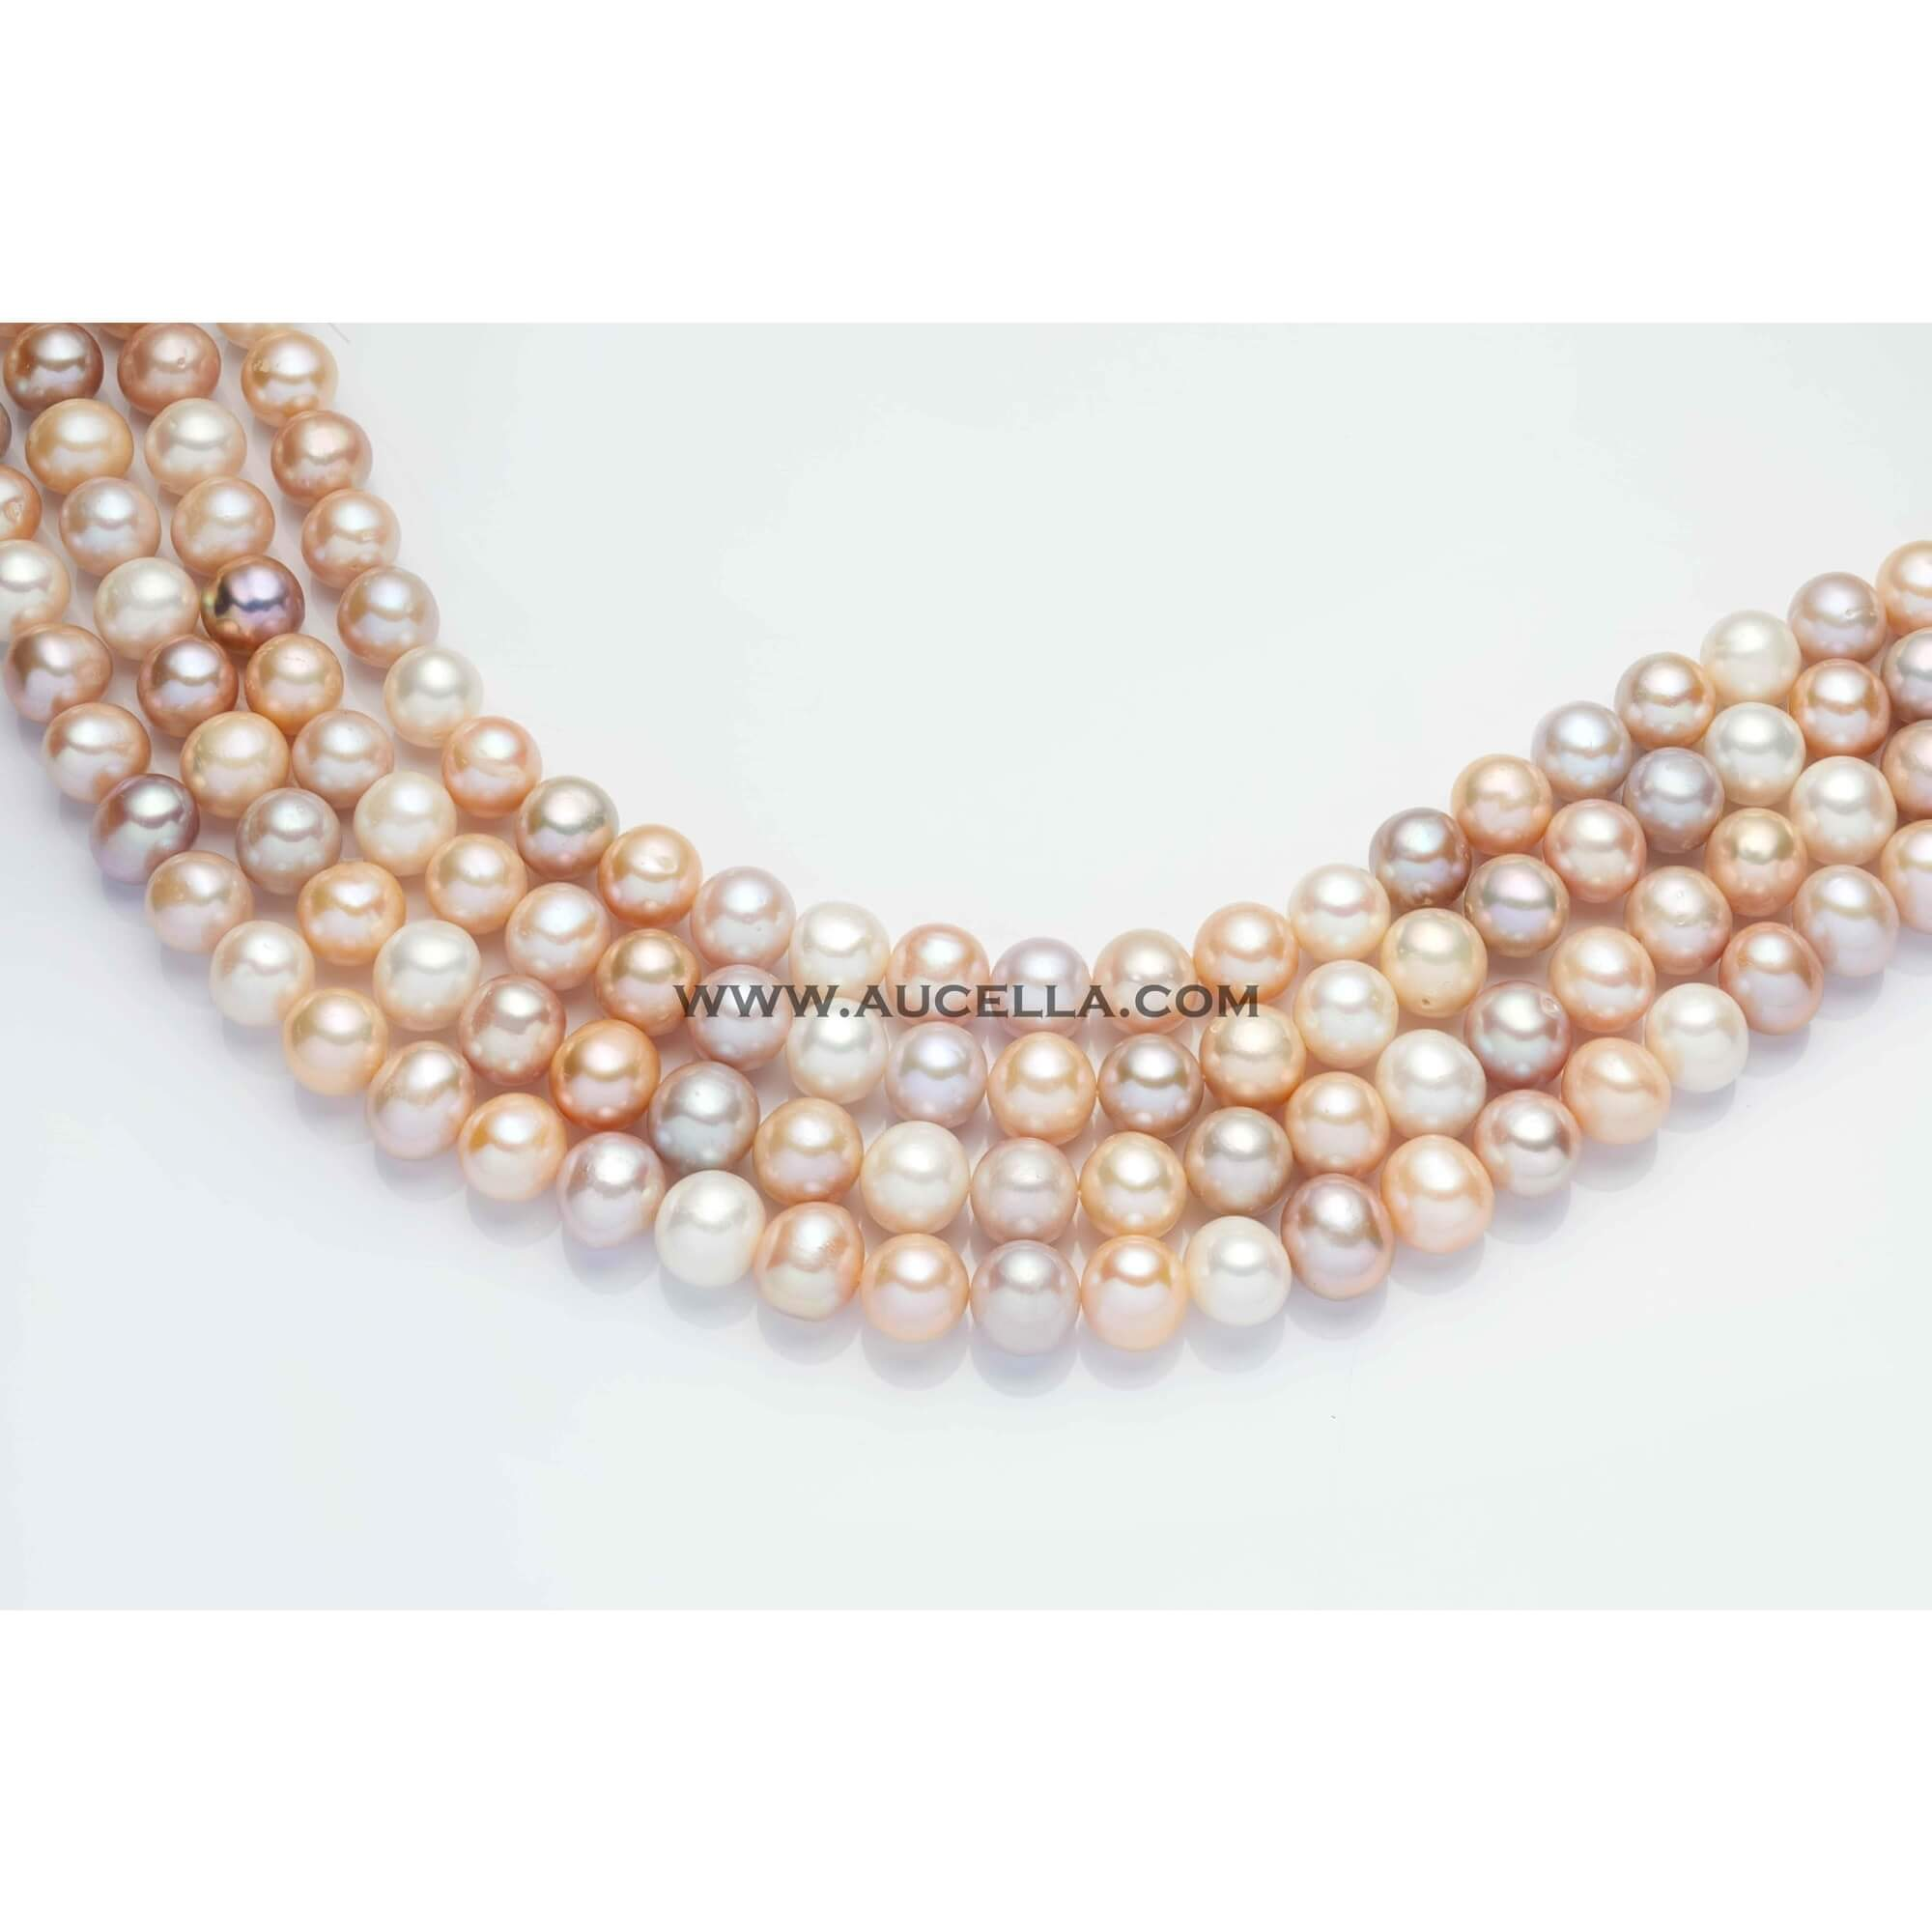 Fresh water pearls beads shape mm 10 - 11